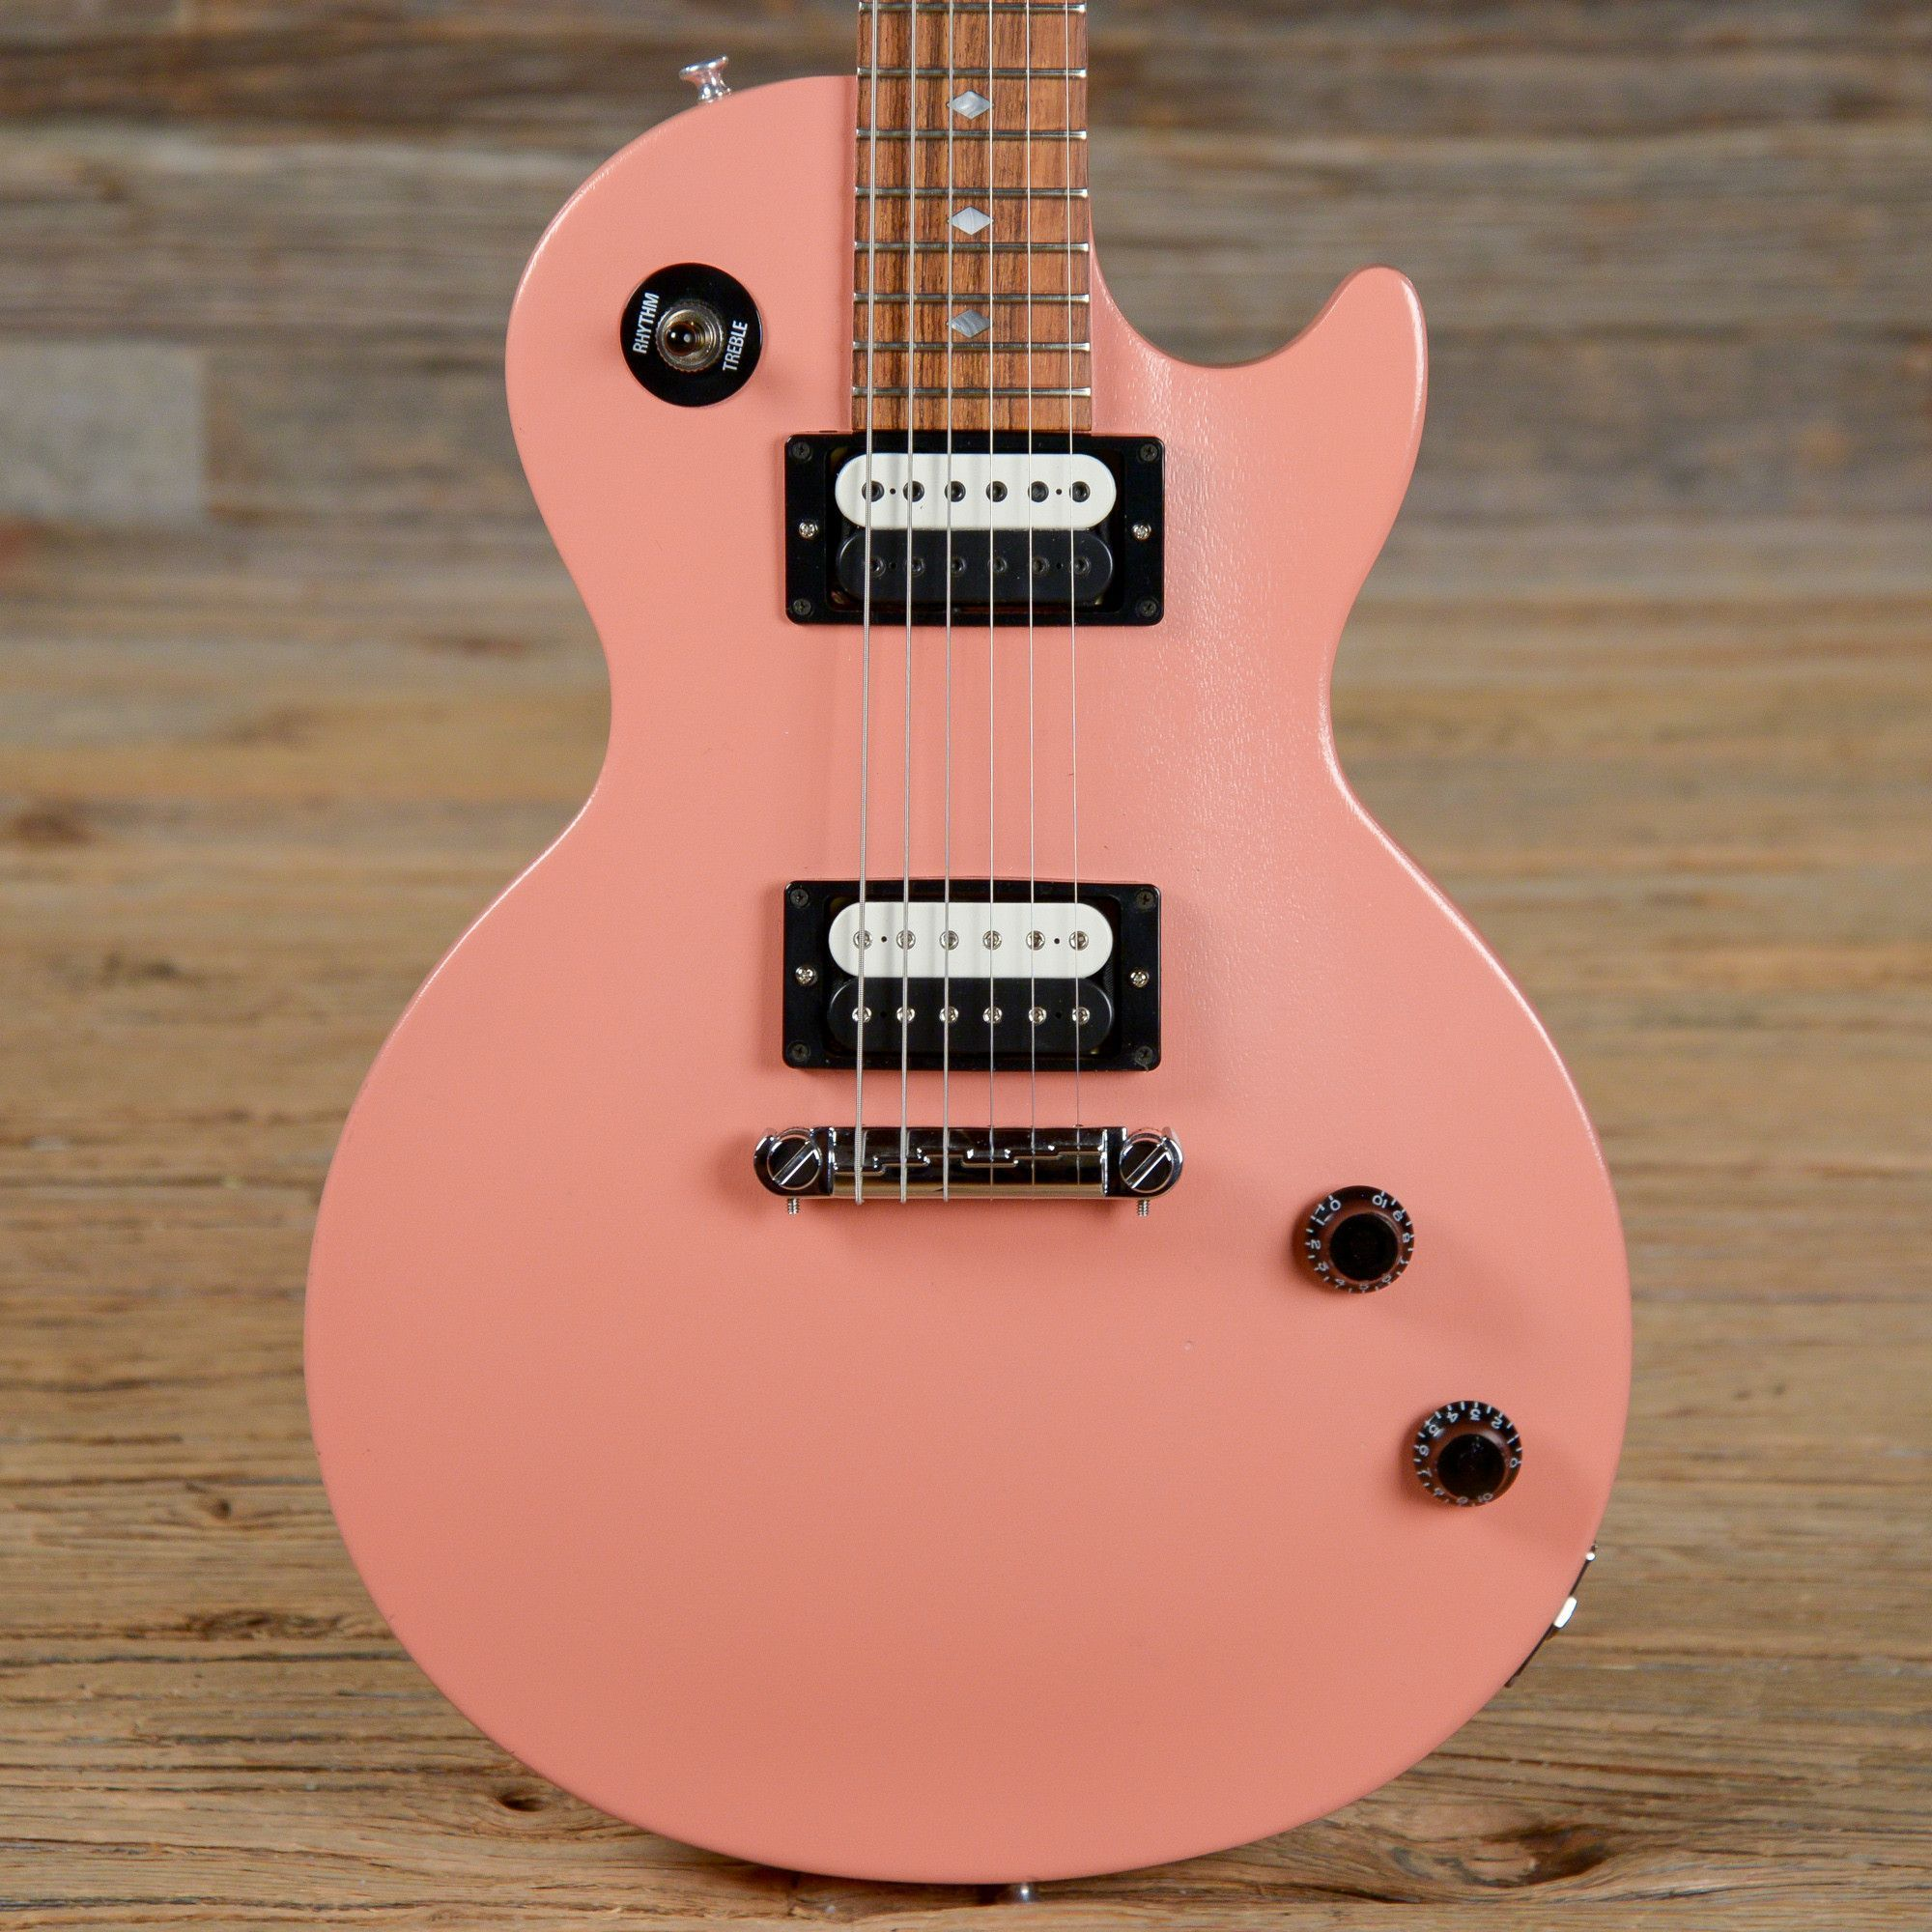 Gibson Les Paul Vixen Coral Pink 2006 S561 Guitar And In 2018 Epi Vs Selector Switch Mylespaulcom